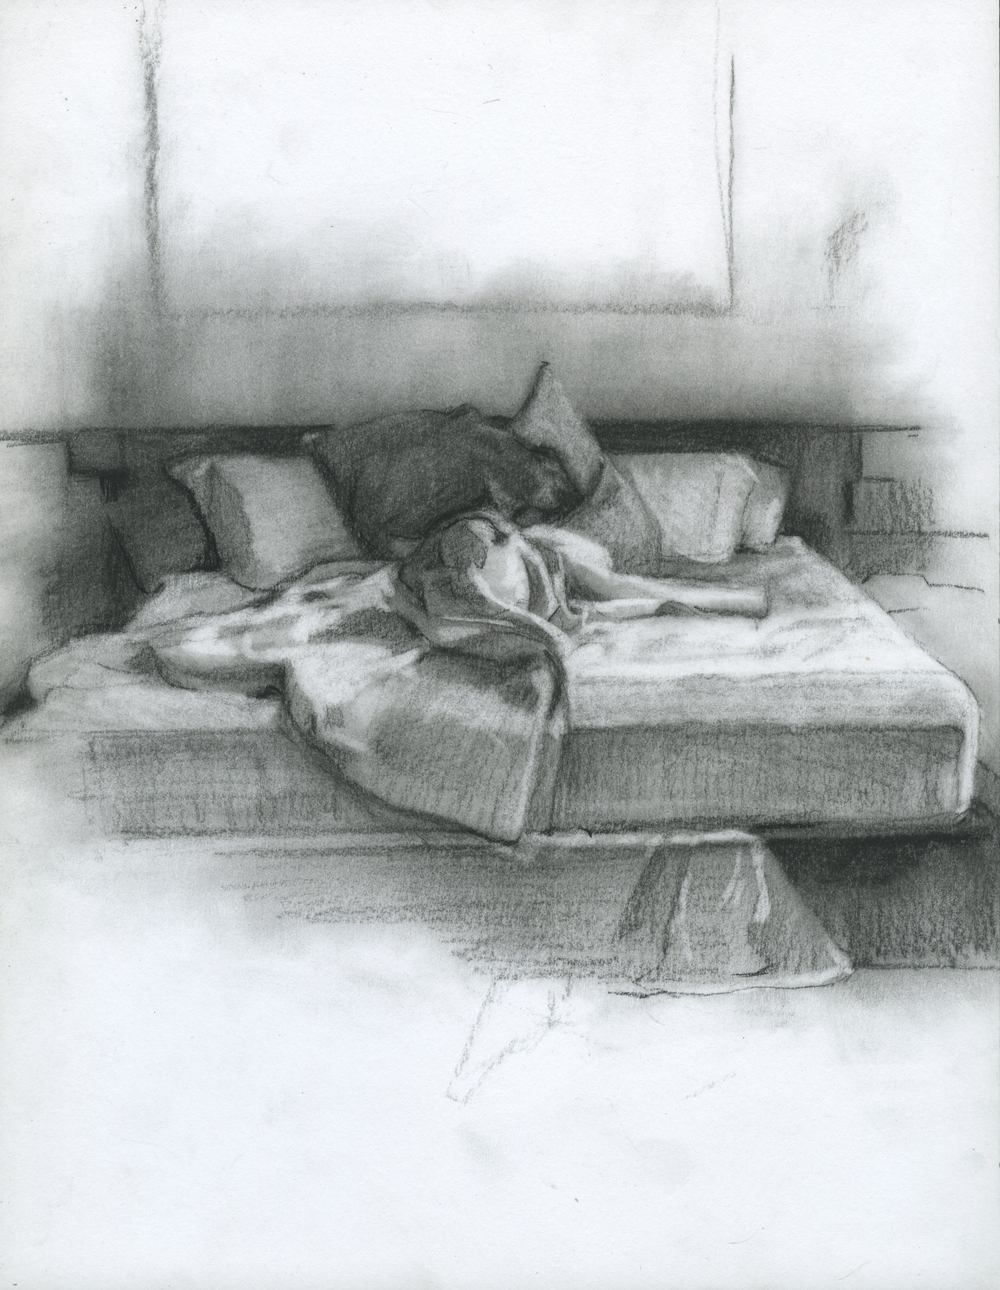 """Before We Started Dreaming, charcoal on paper, 11"""" x 8.5"""", 2014"""